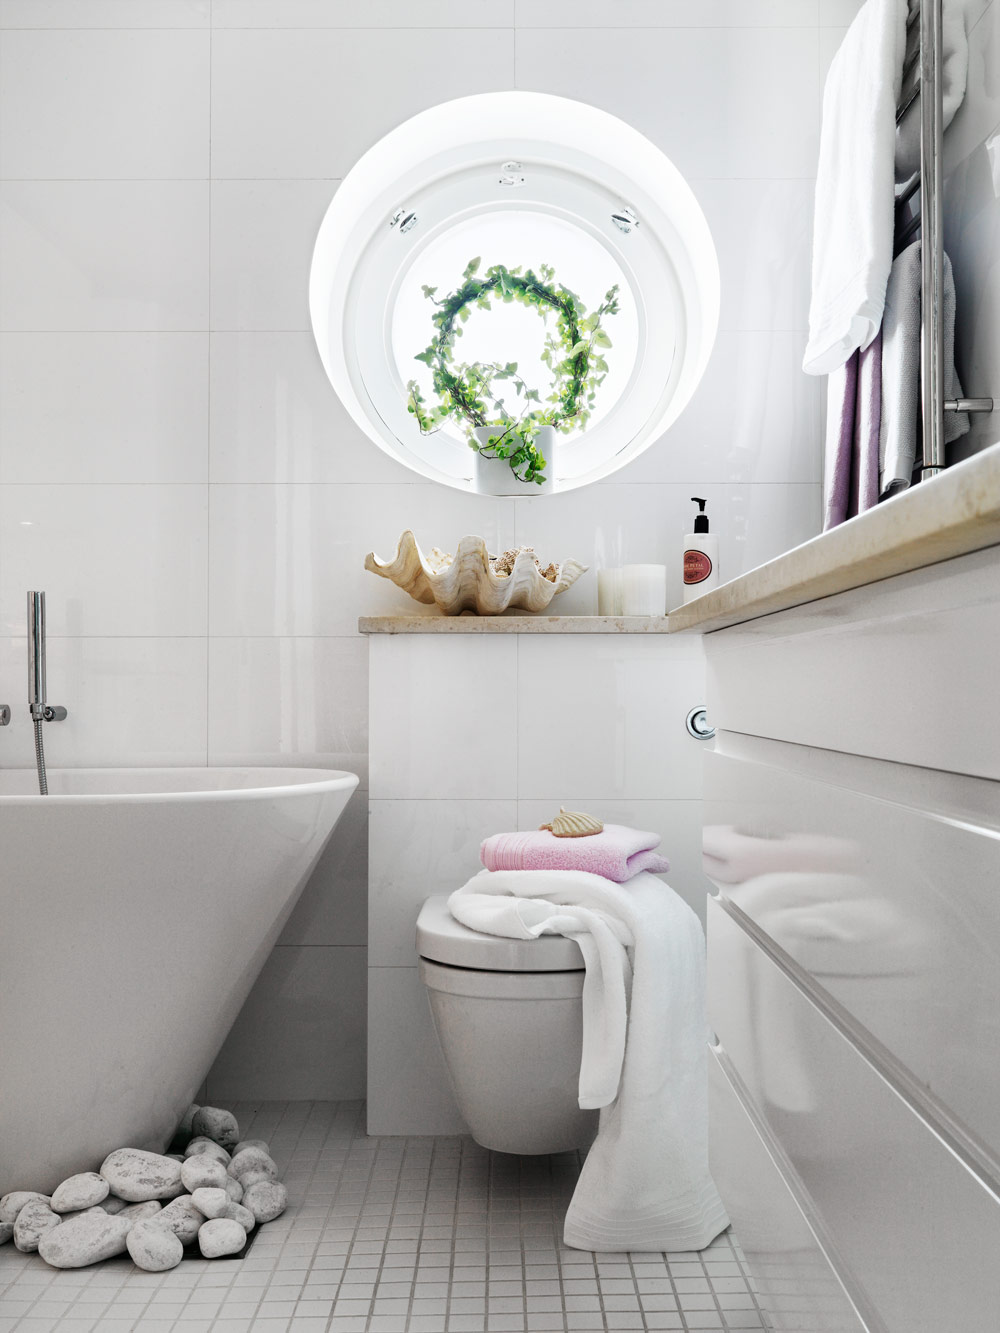 Stylish small bathroom with an unusual decor digsdigs for Tiny bath ideas